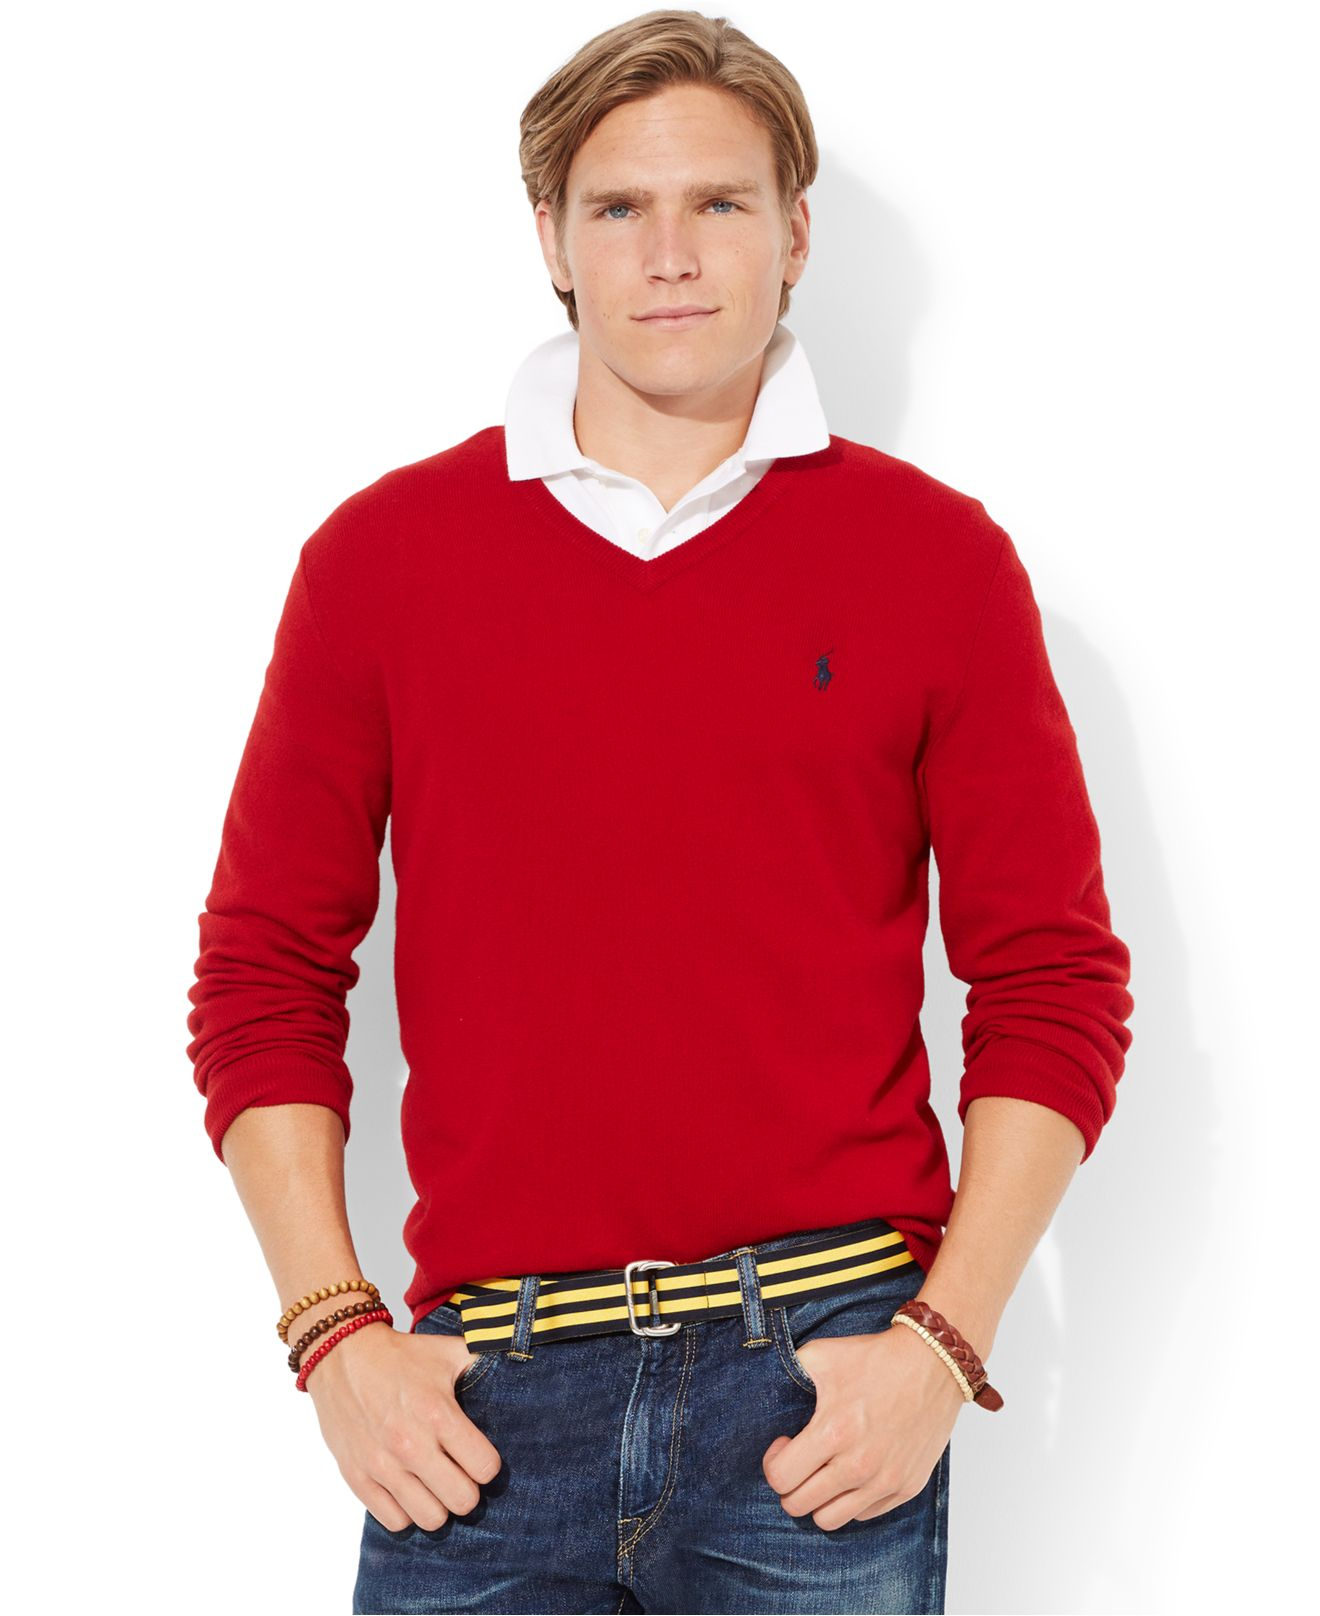 Polo ralph lauren Loryelle Merino Wool V-Neck Sweater in Red for ...